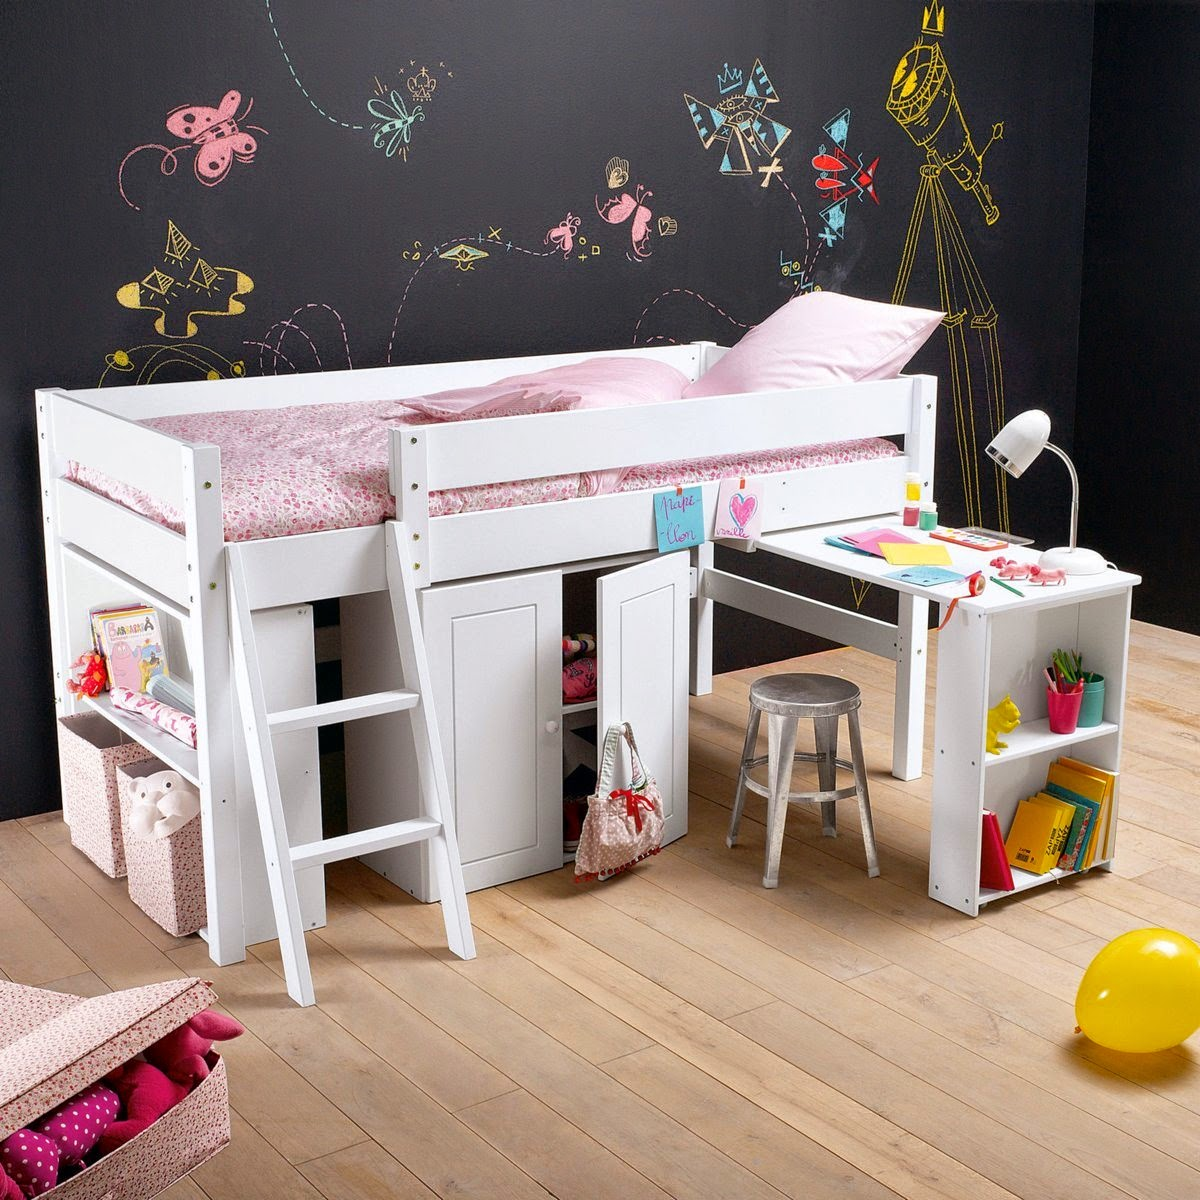 loulou gatou sp cial lits sur lev s pour chambres d 39 enfants. Black Bedroom Furniture Sets. Home Design Ideas